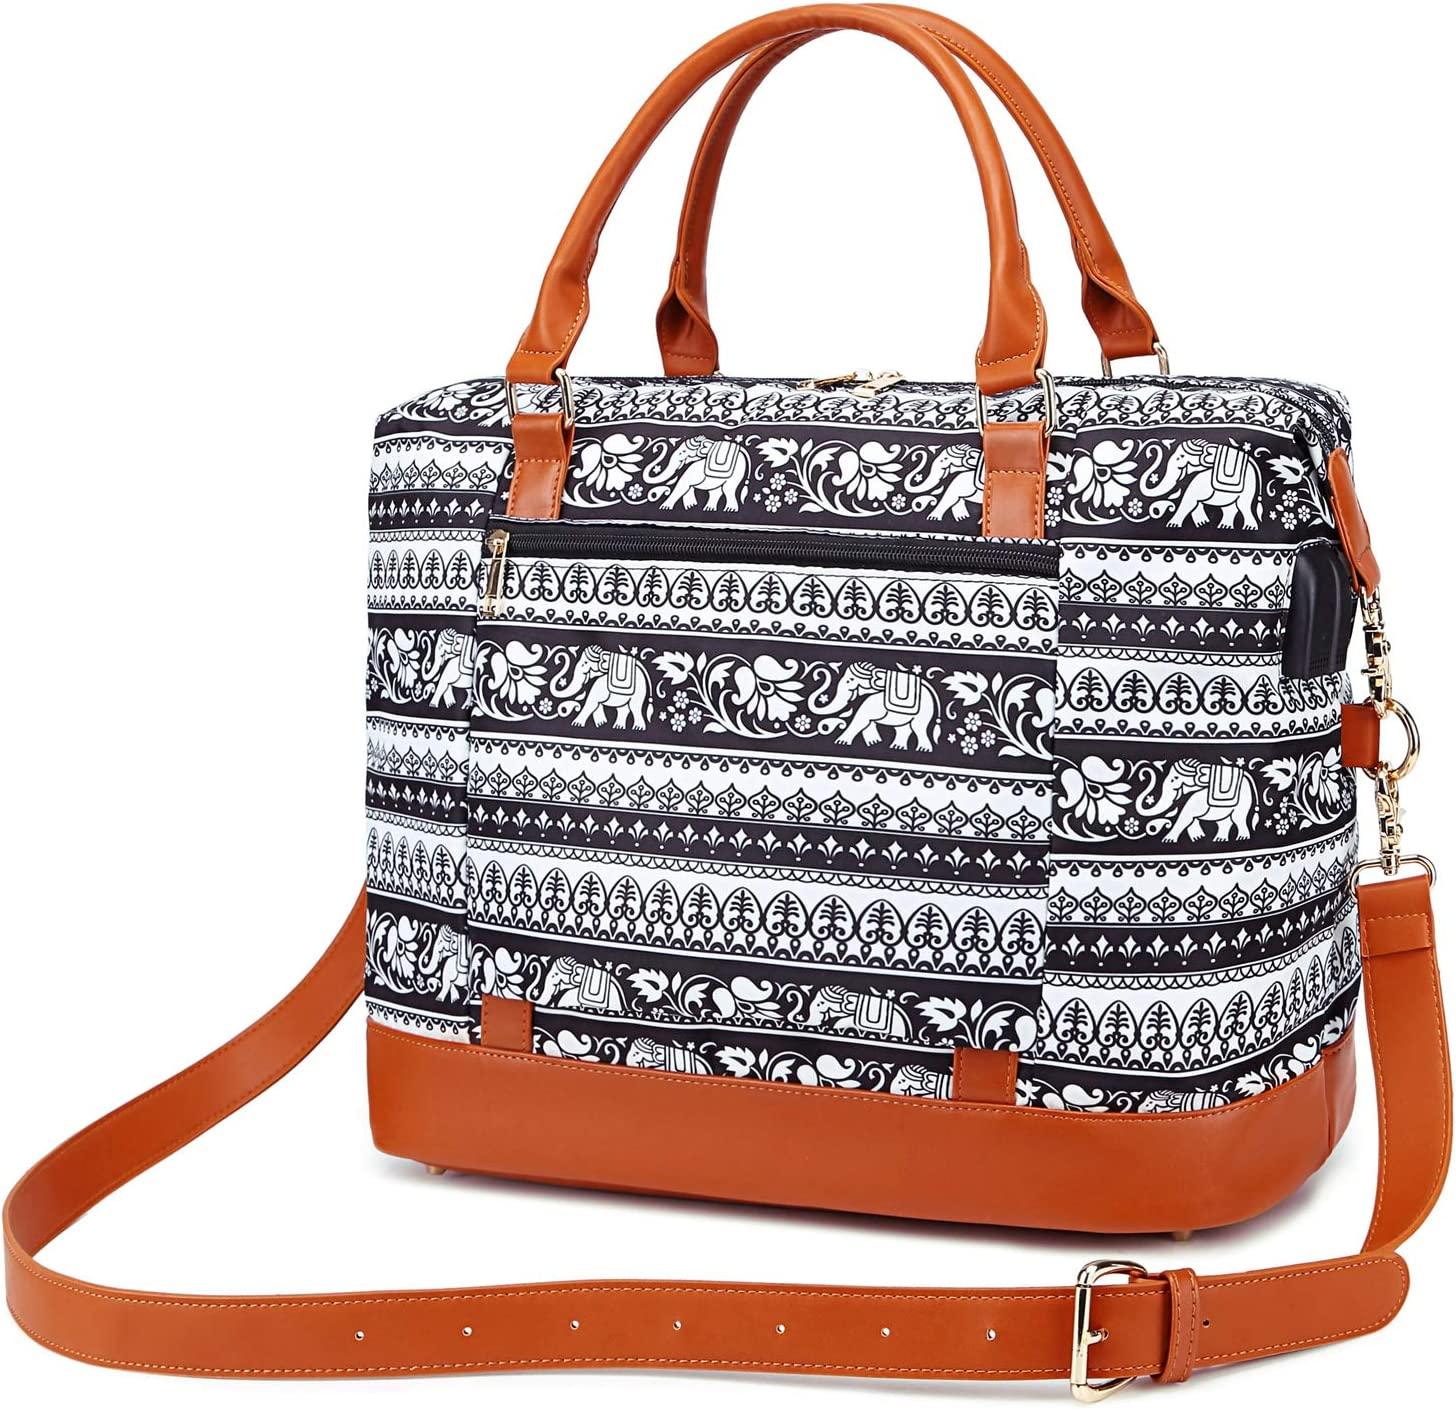 Weekender Bag Women Overnight Travel Tote Bag Carry-on Duffle Bag Water Resistant Travel Bag with Shoulder Strap and USB Charging Port